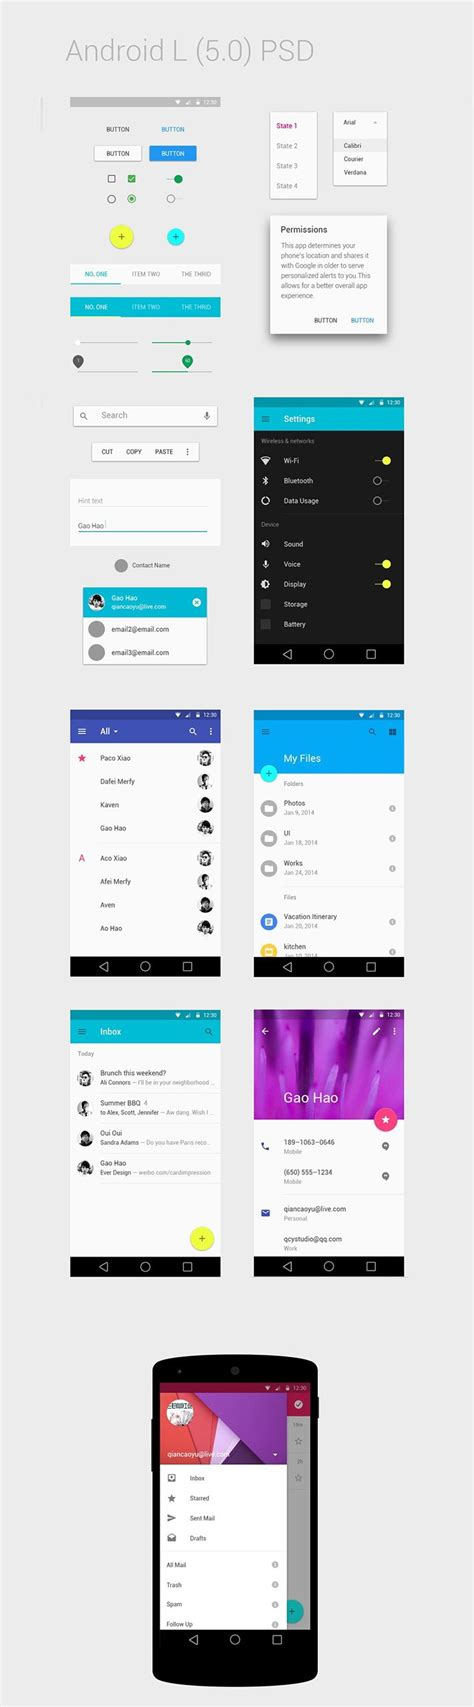 android layout template download 10 gui templates for android downgraf com design shop